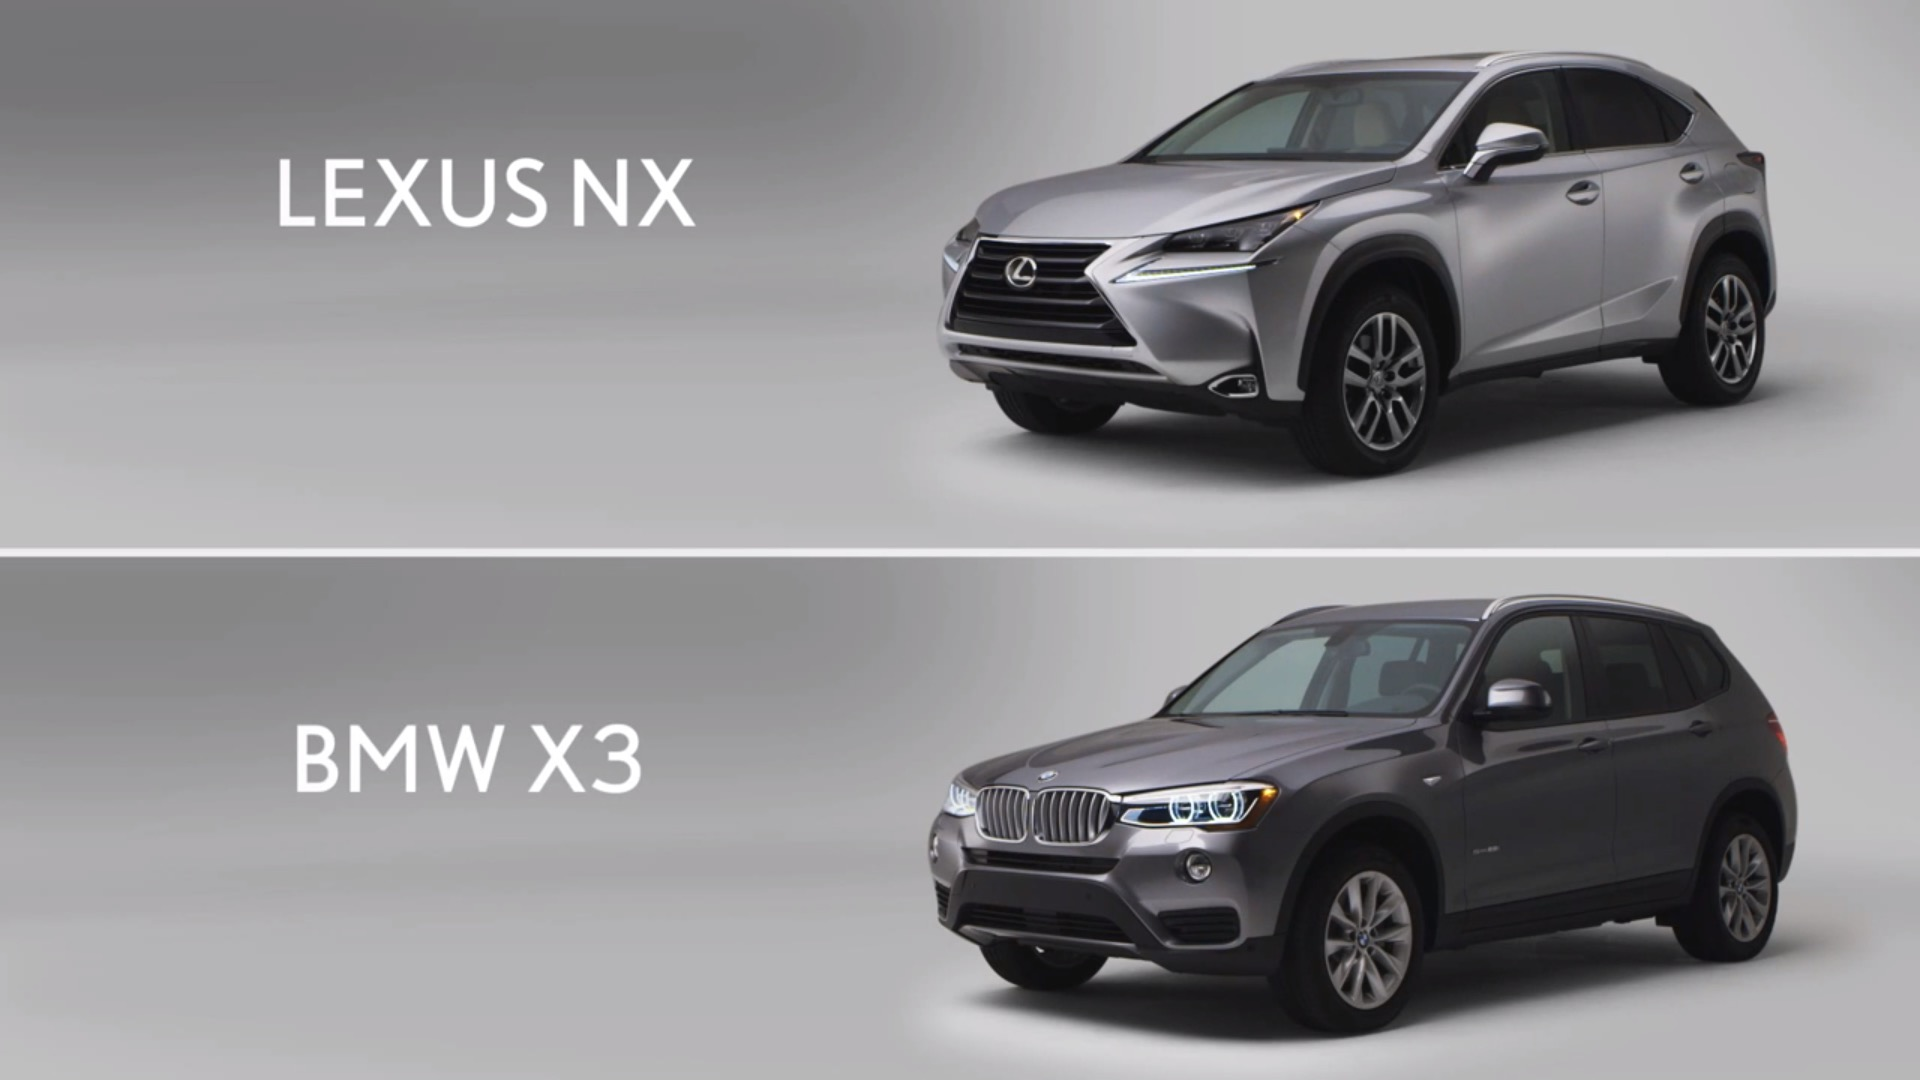 lexus is back this time 39 proving 39 the nx is better than the bmw x3 autoevolution. Black Bedroom Furniture Sets. Home Design Ideas